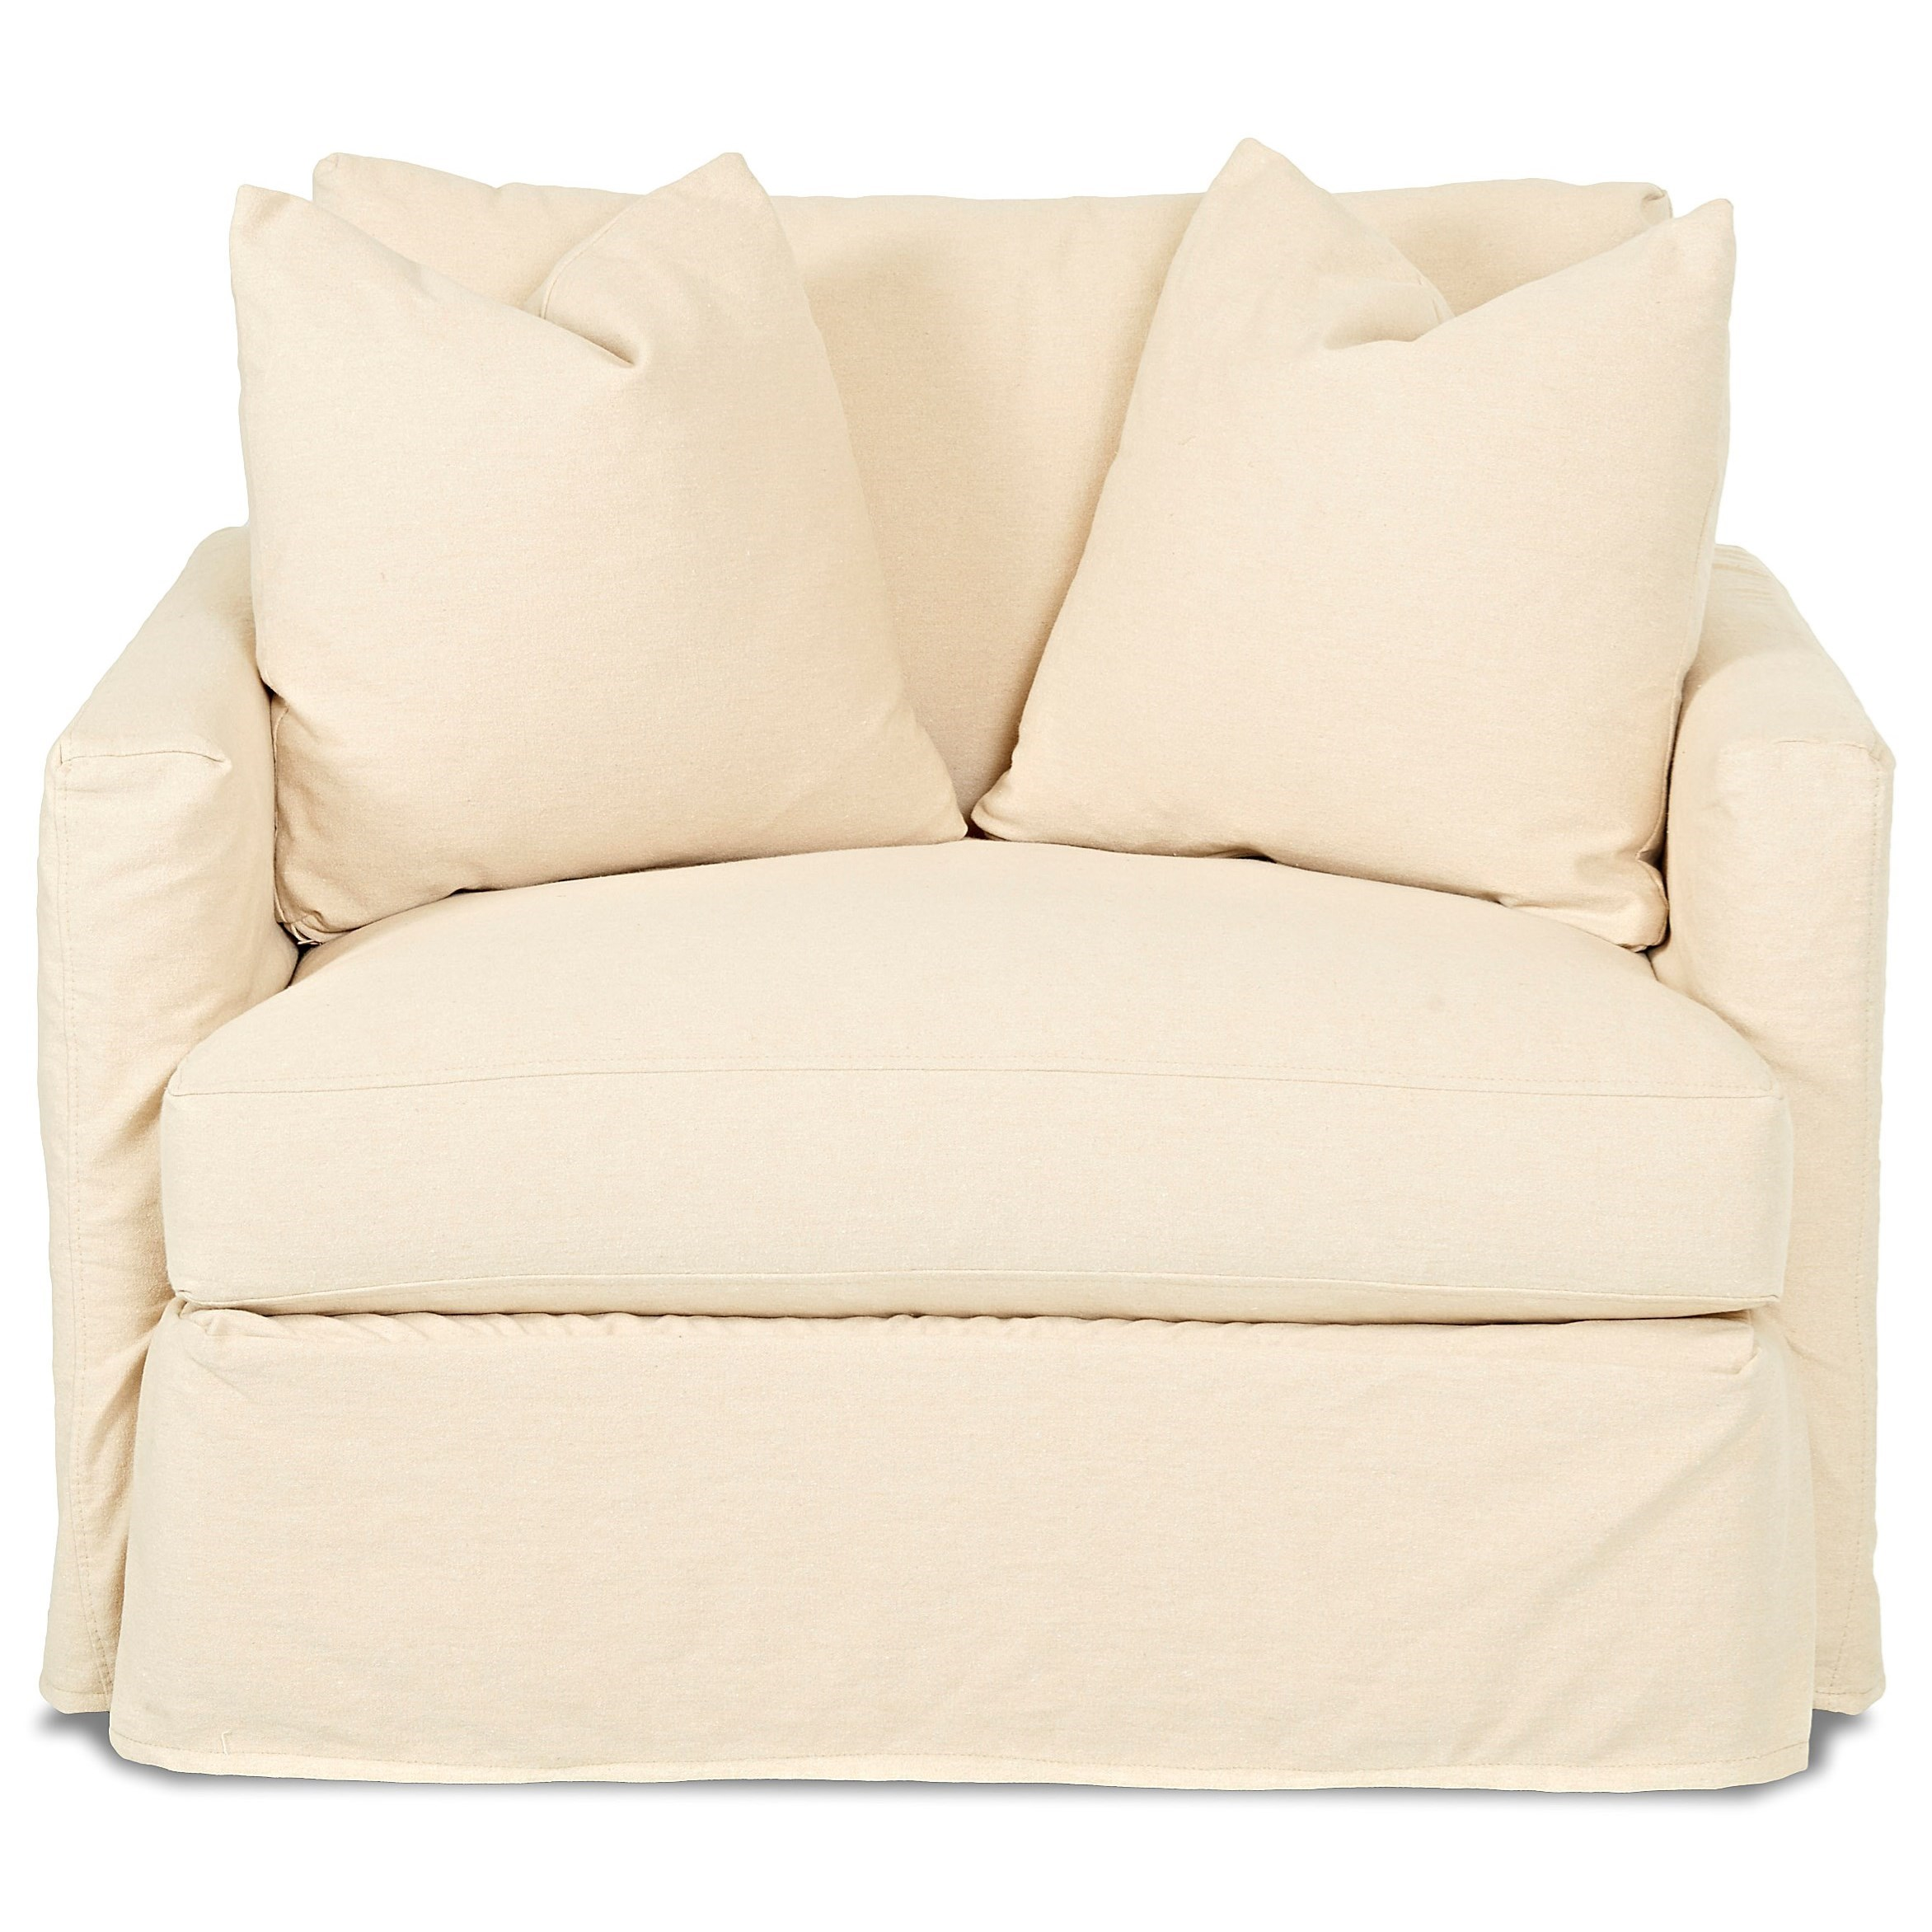 Leisure Chair with Slipcover by Klaussner at Northeast Factory Direct